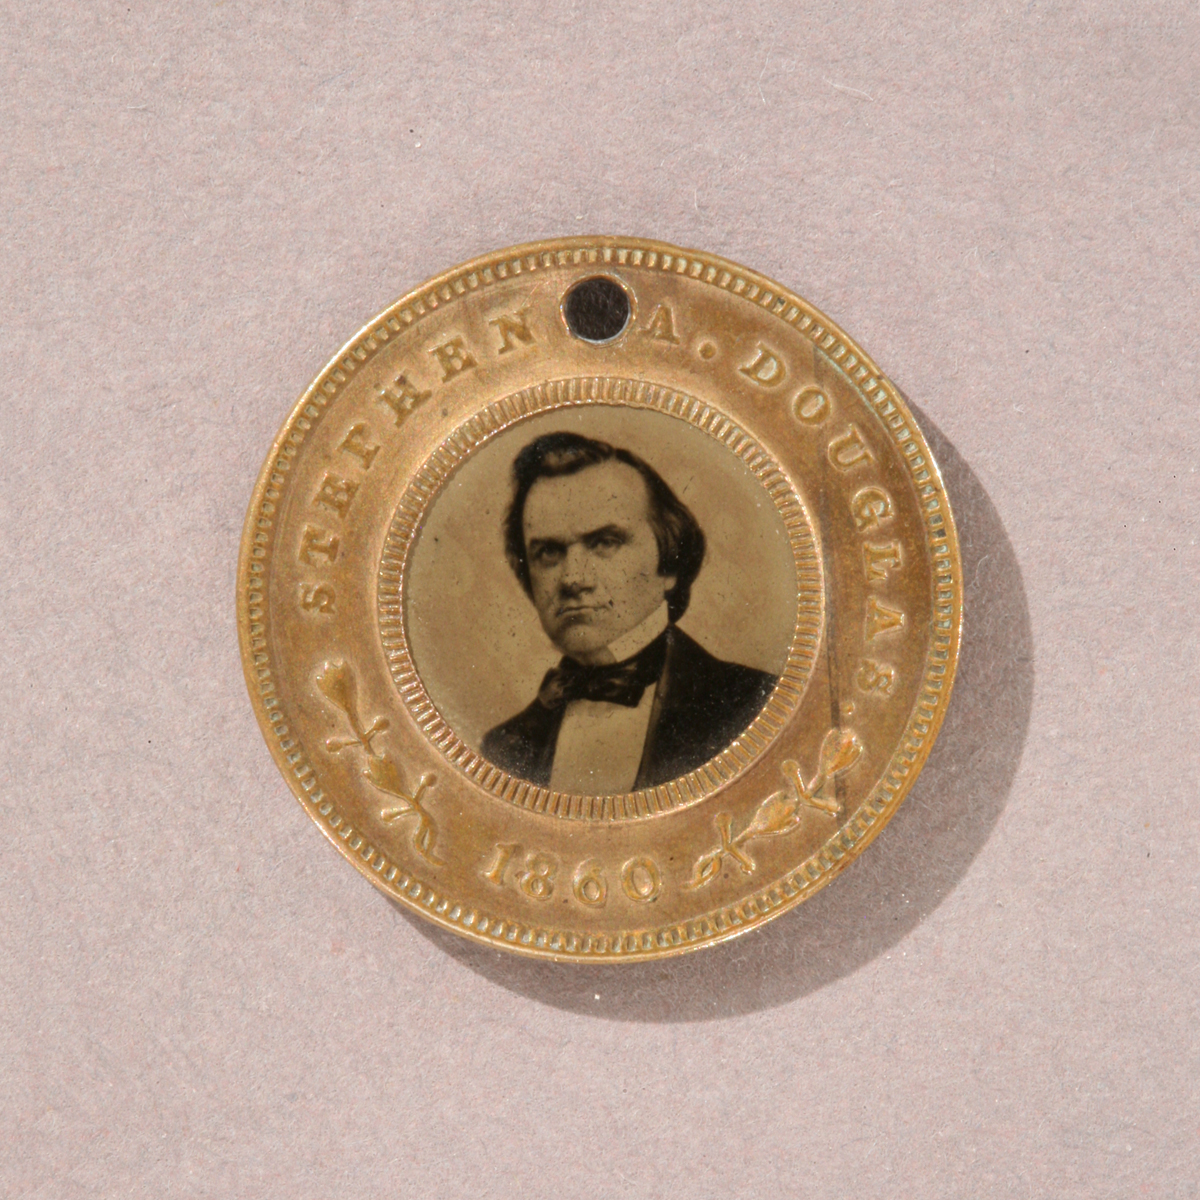 "Round gold token with image of man's shoulders and head in the middle and text ""Stephen Douglas 1860"" around edge"